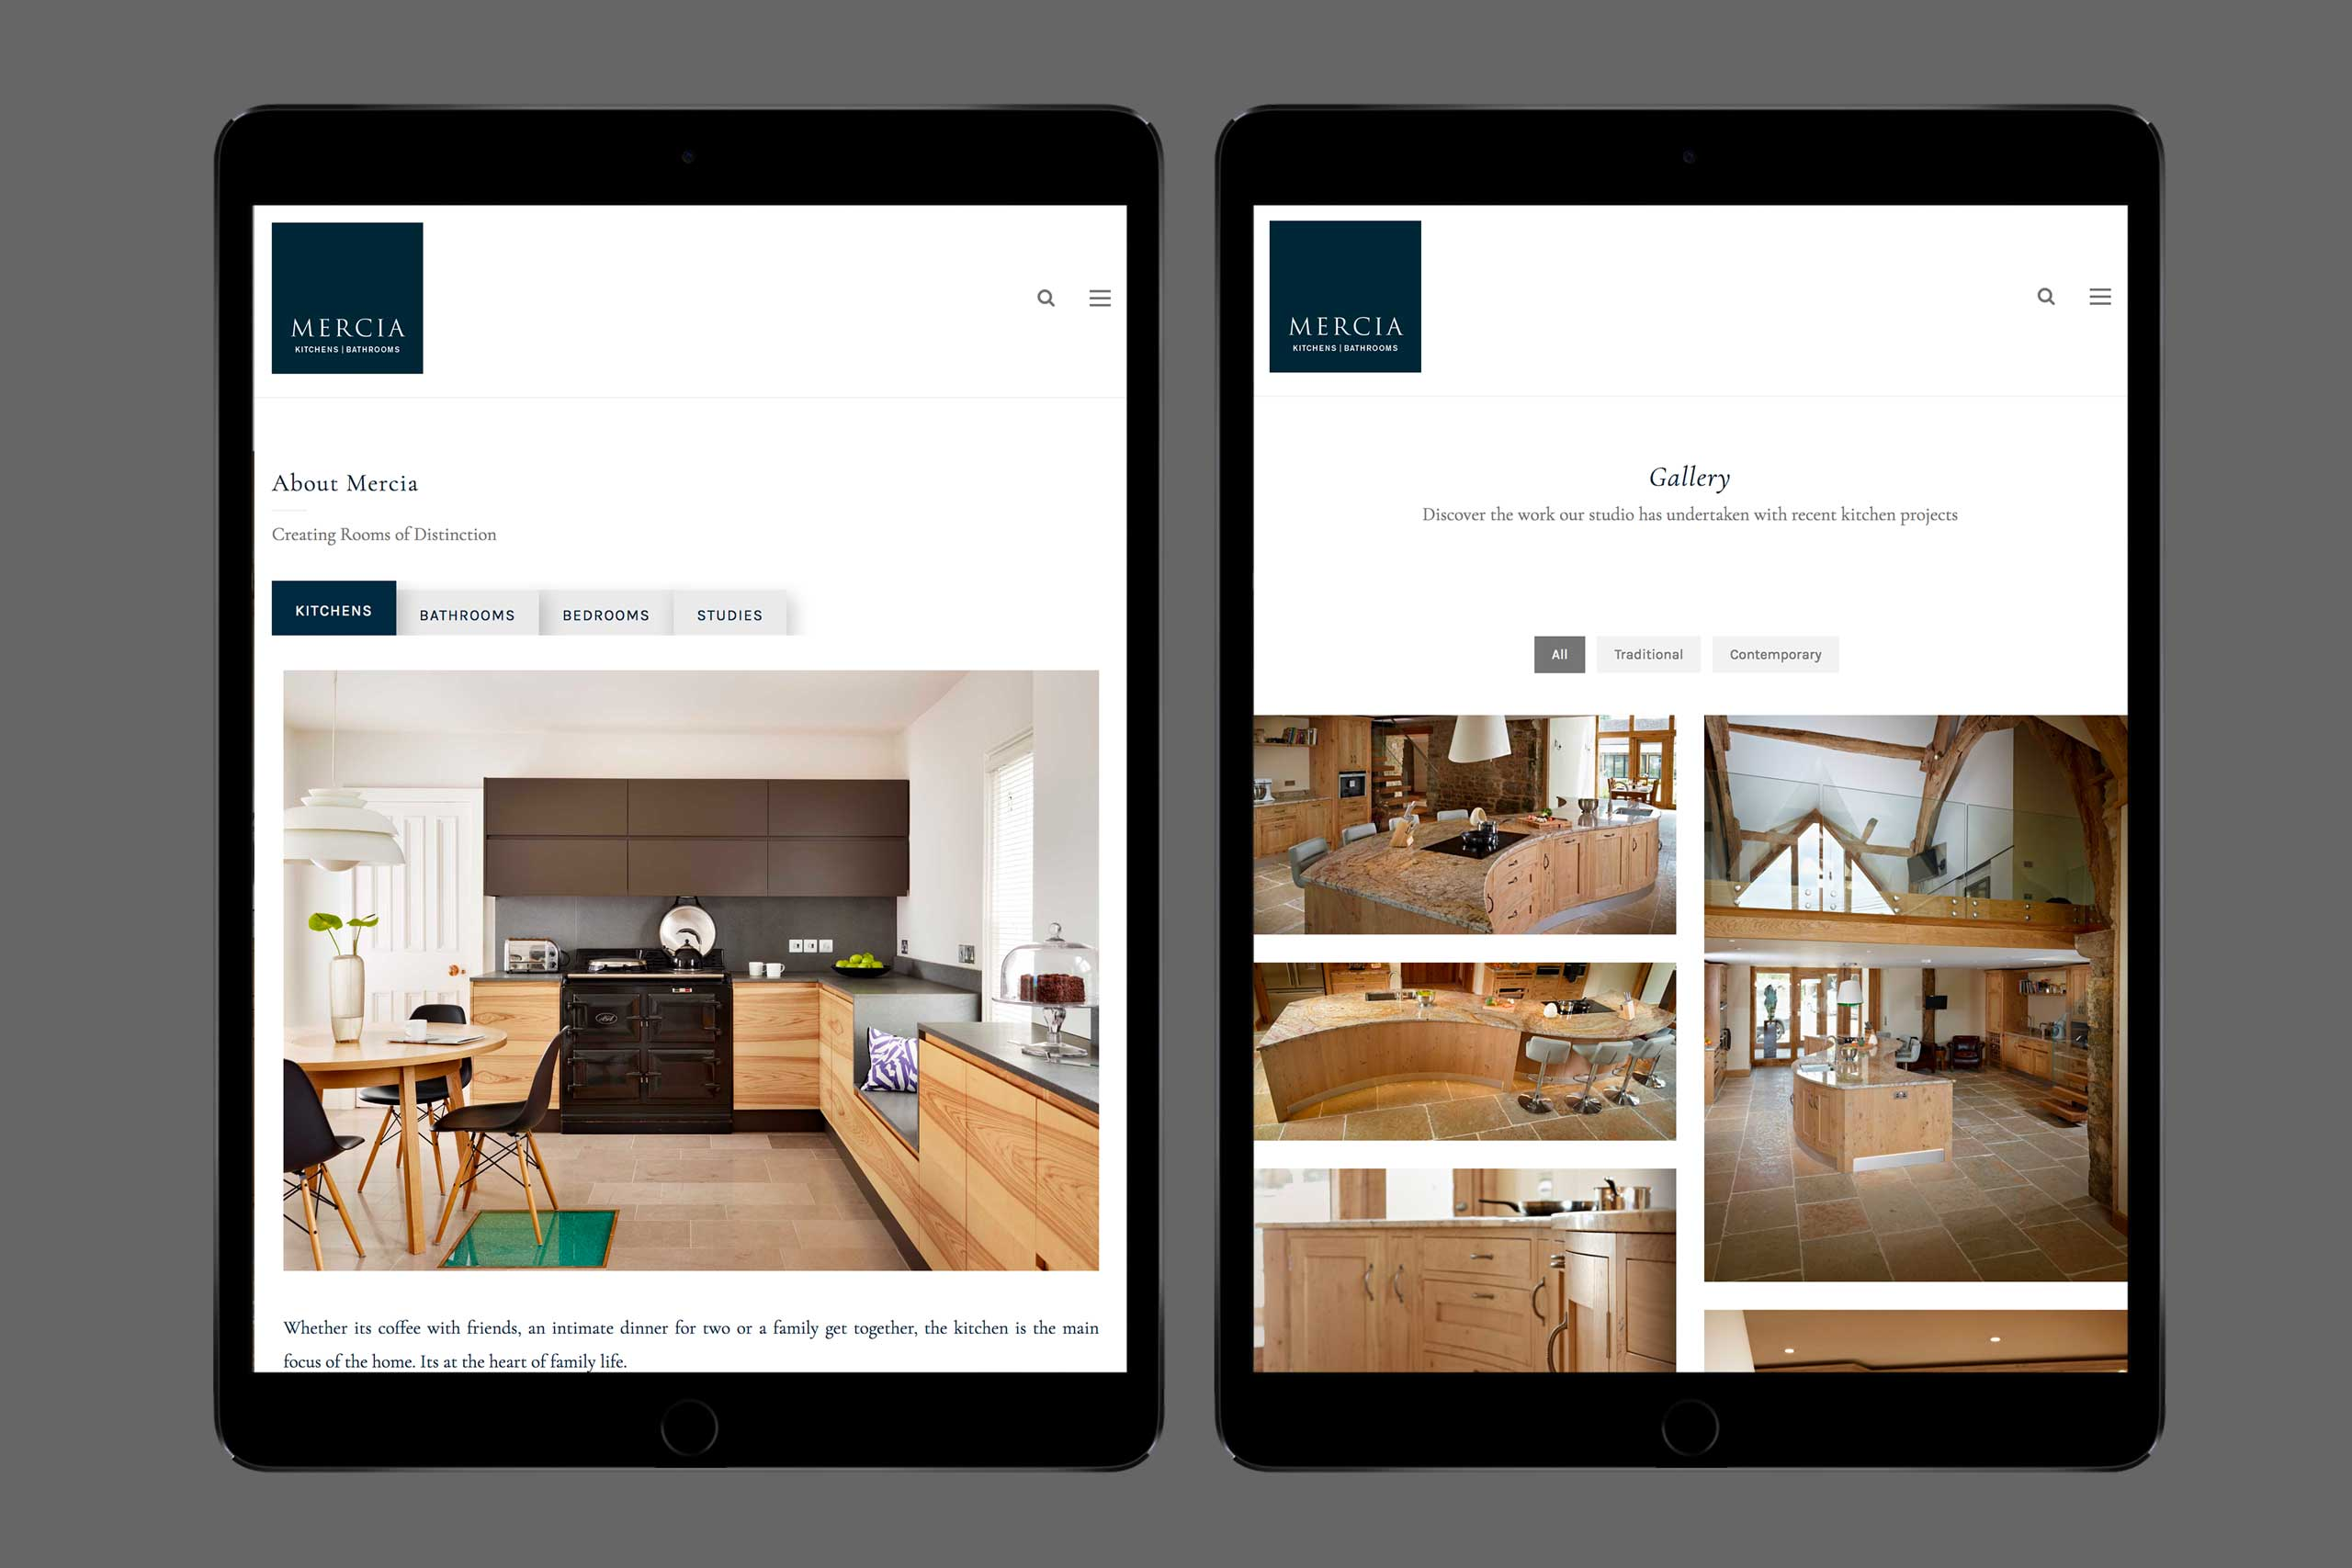 Mercia Kitchens and Bathrooms website tablet view